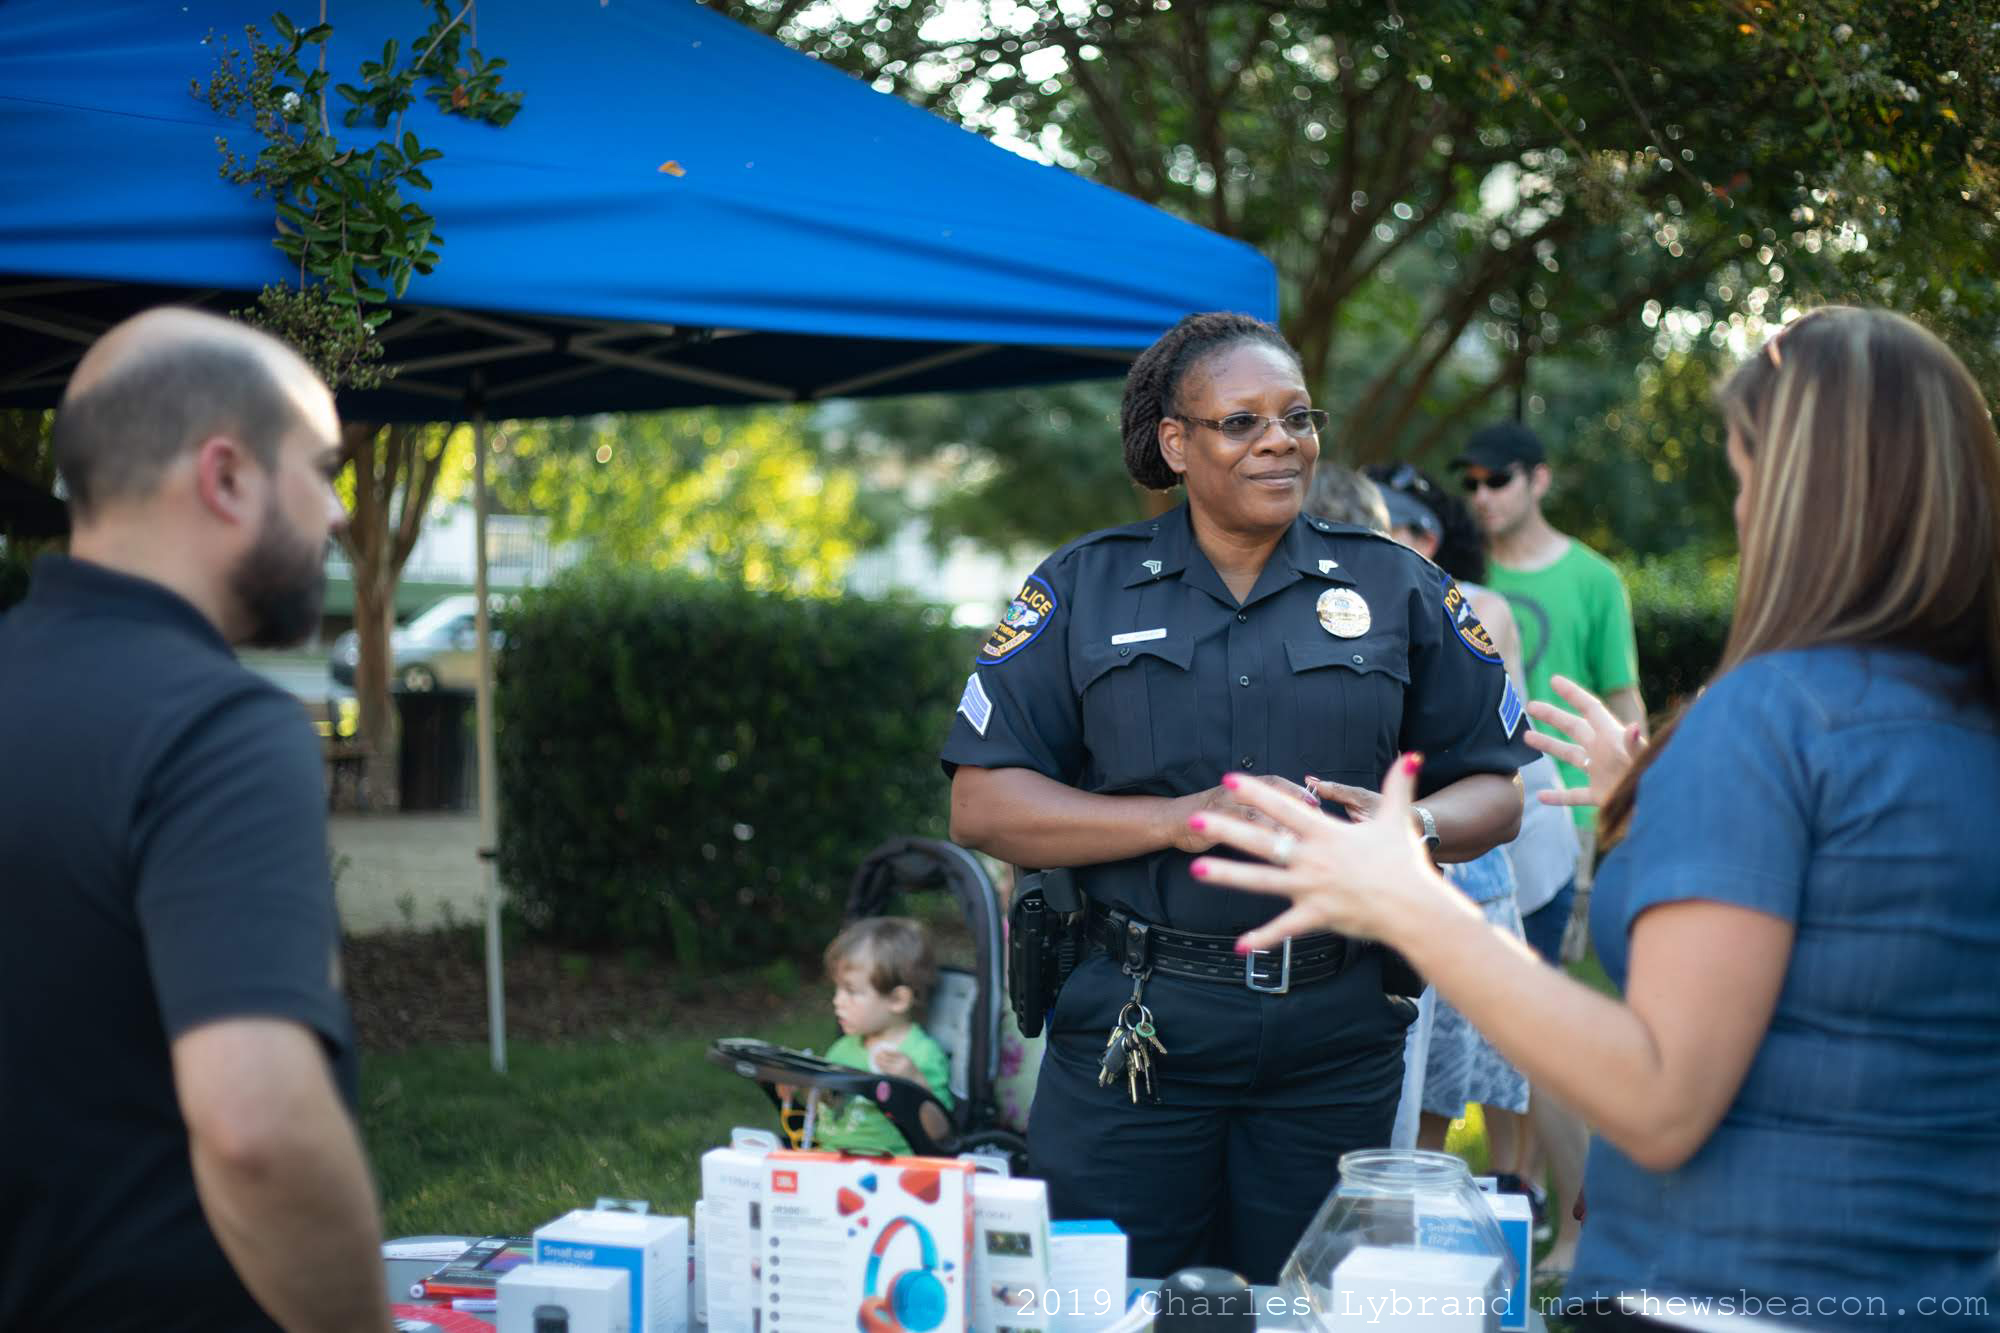 beacon national night out Sgt Archer.jpg